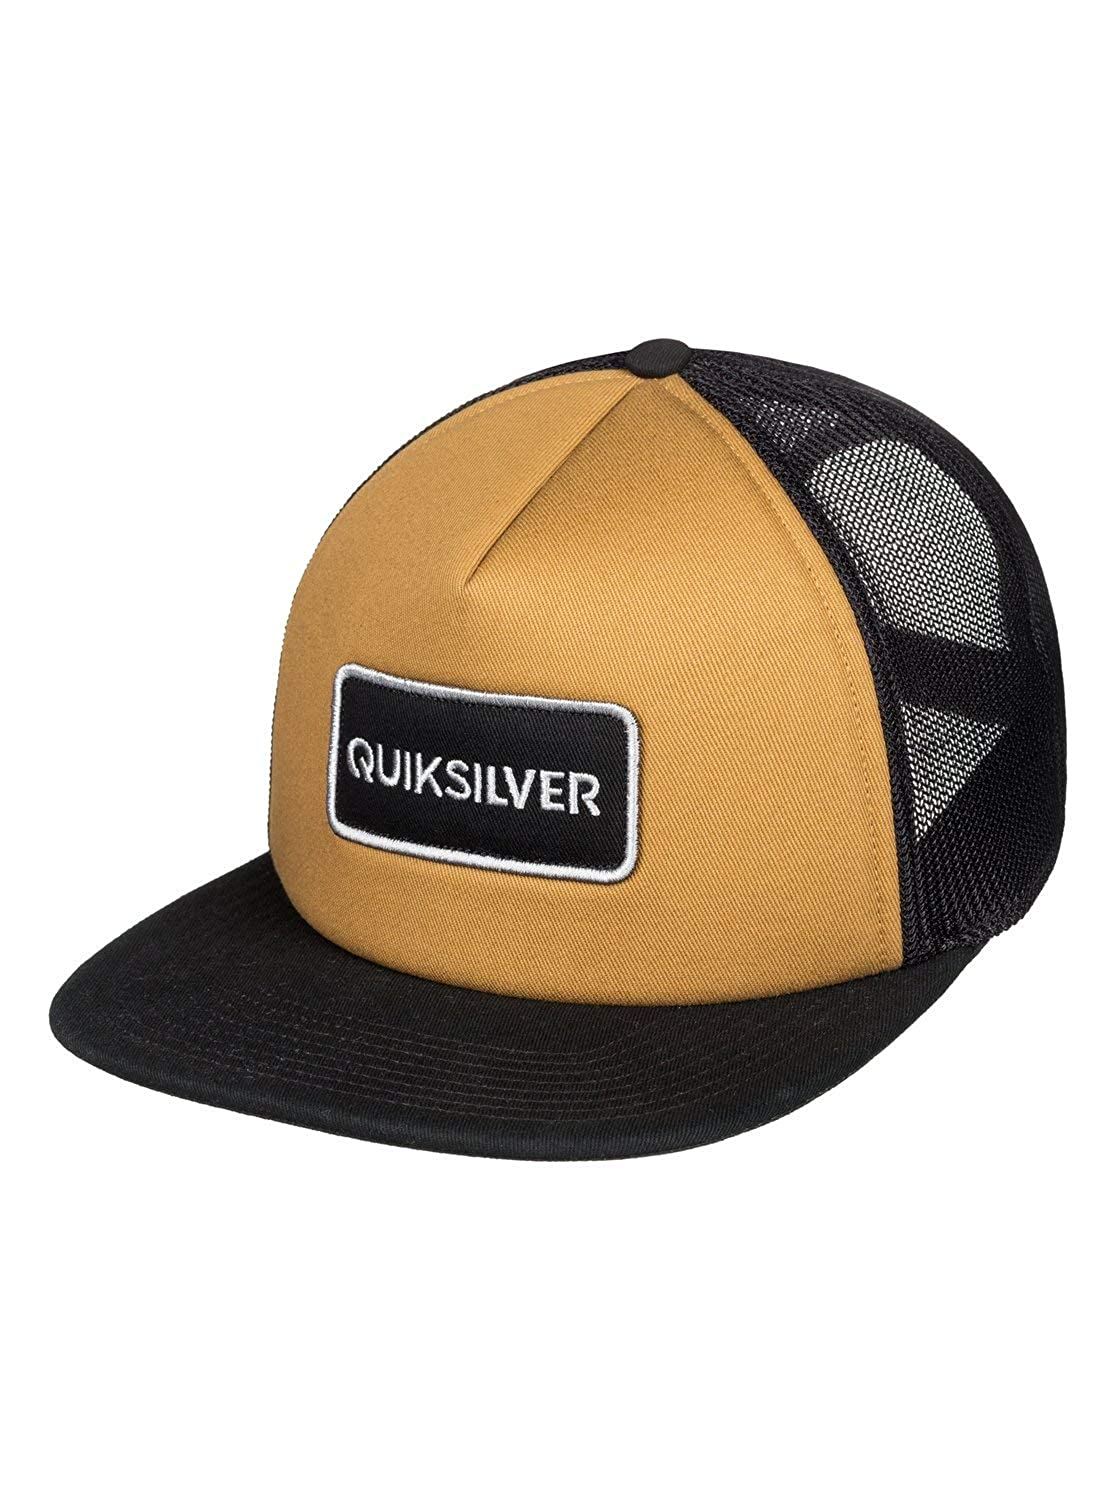 Quiksilver Mens Startles Trucker Hat: Amazon.es: Ropa y accesorios